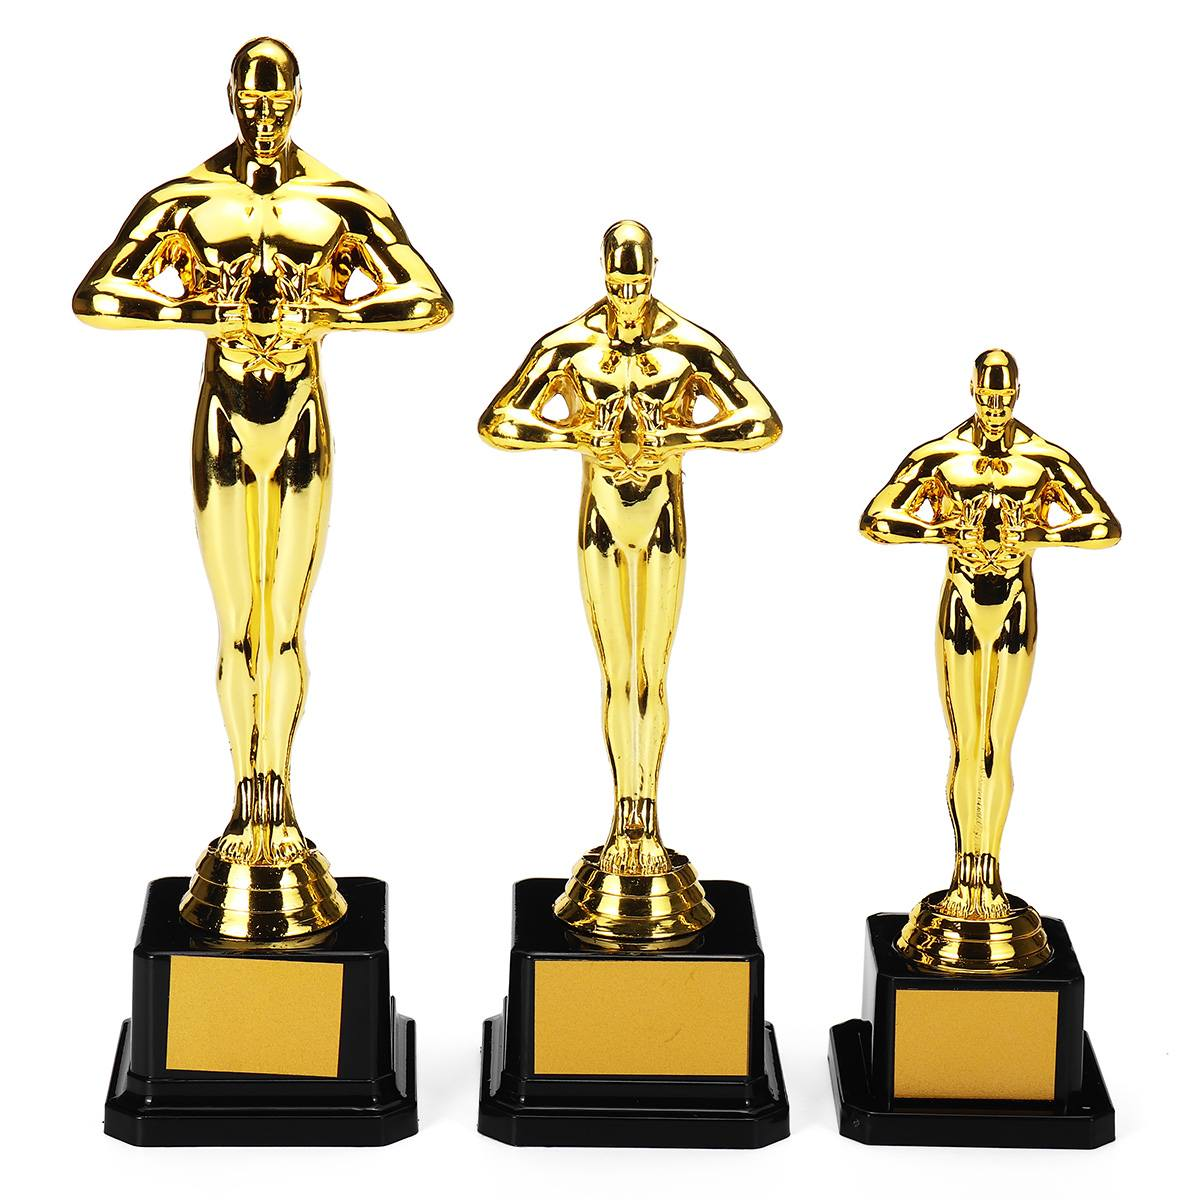 Oscar Trophy Awards Gold-Plated-Replica Team Sport Competition Craft Souvenirs Plastic Party Celebrations Gifts 18cm 21cm 26cm